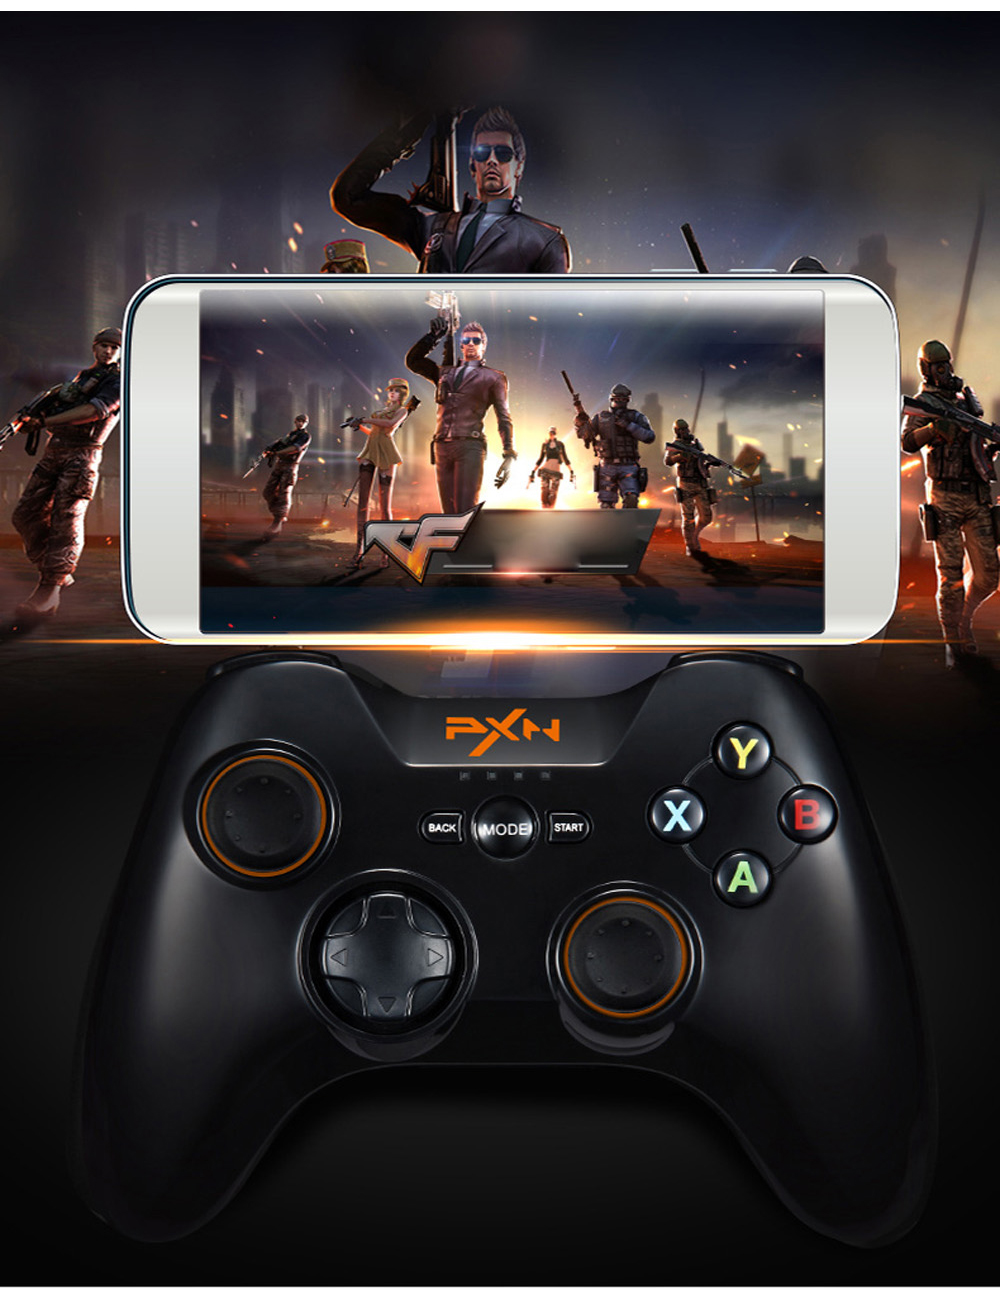 PXN 9613 Wireless Bluetooth Game Controller Portable Handle Bracket Gamepad for PC Tablet Android Smartphone TV Box PK 9603